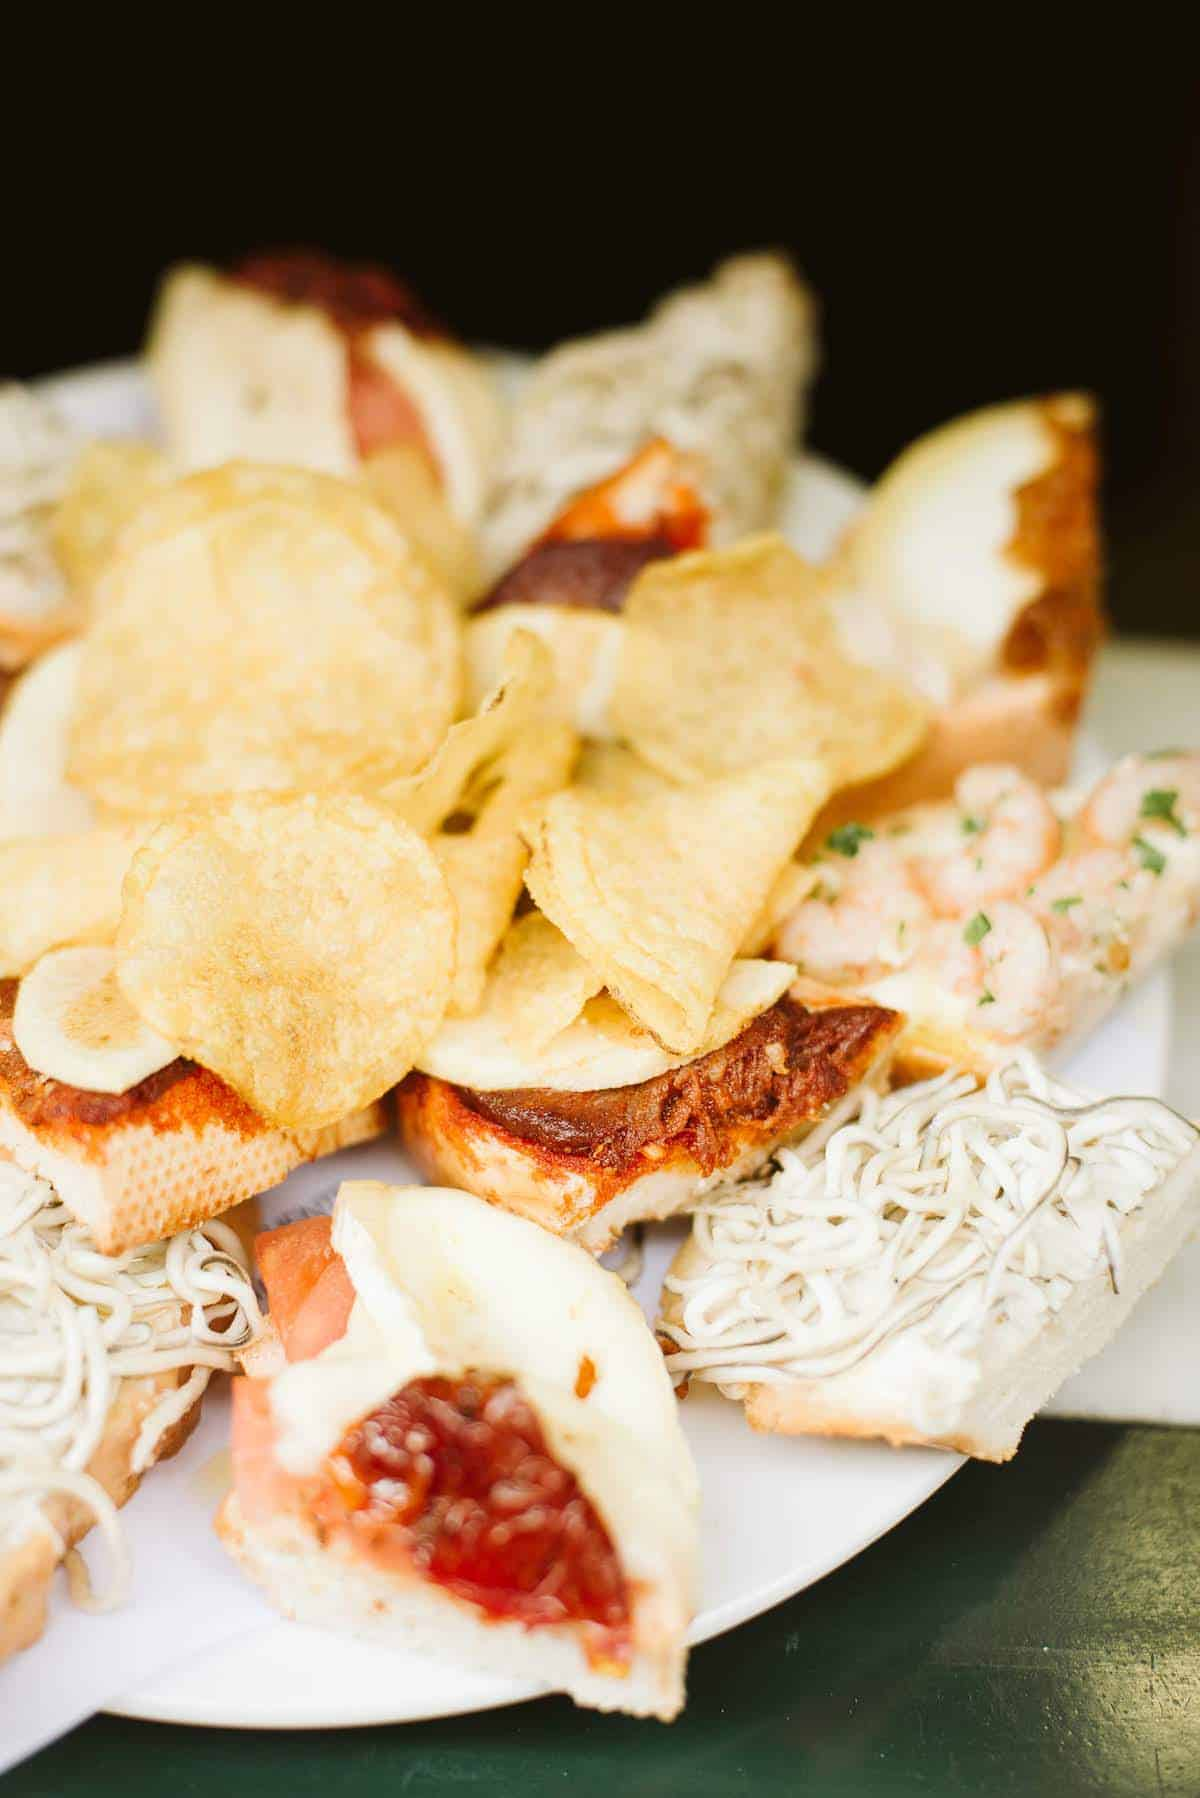 Tray of small open-faced sandwiches with potato chips in the middle